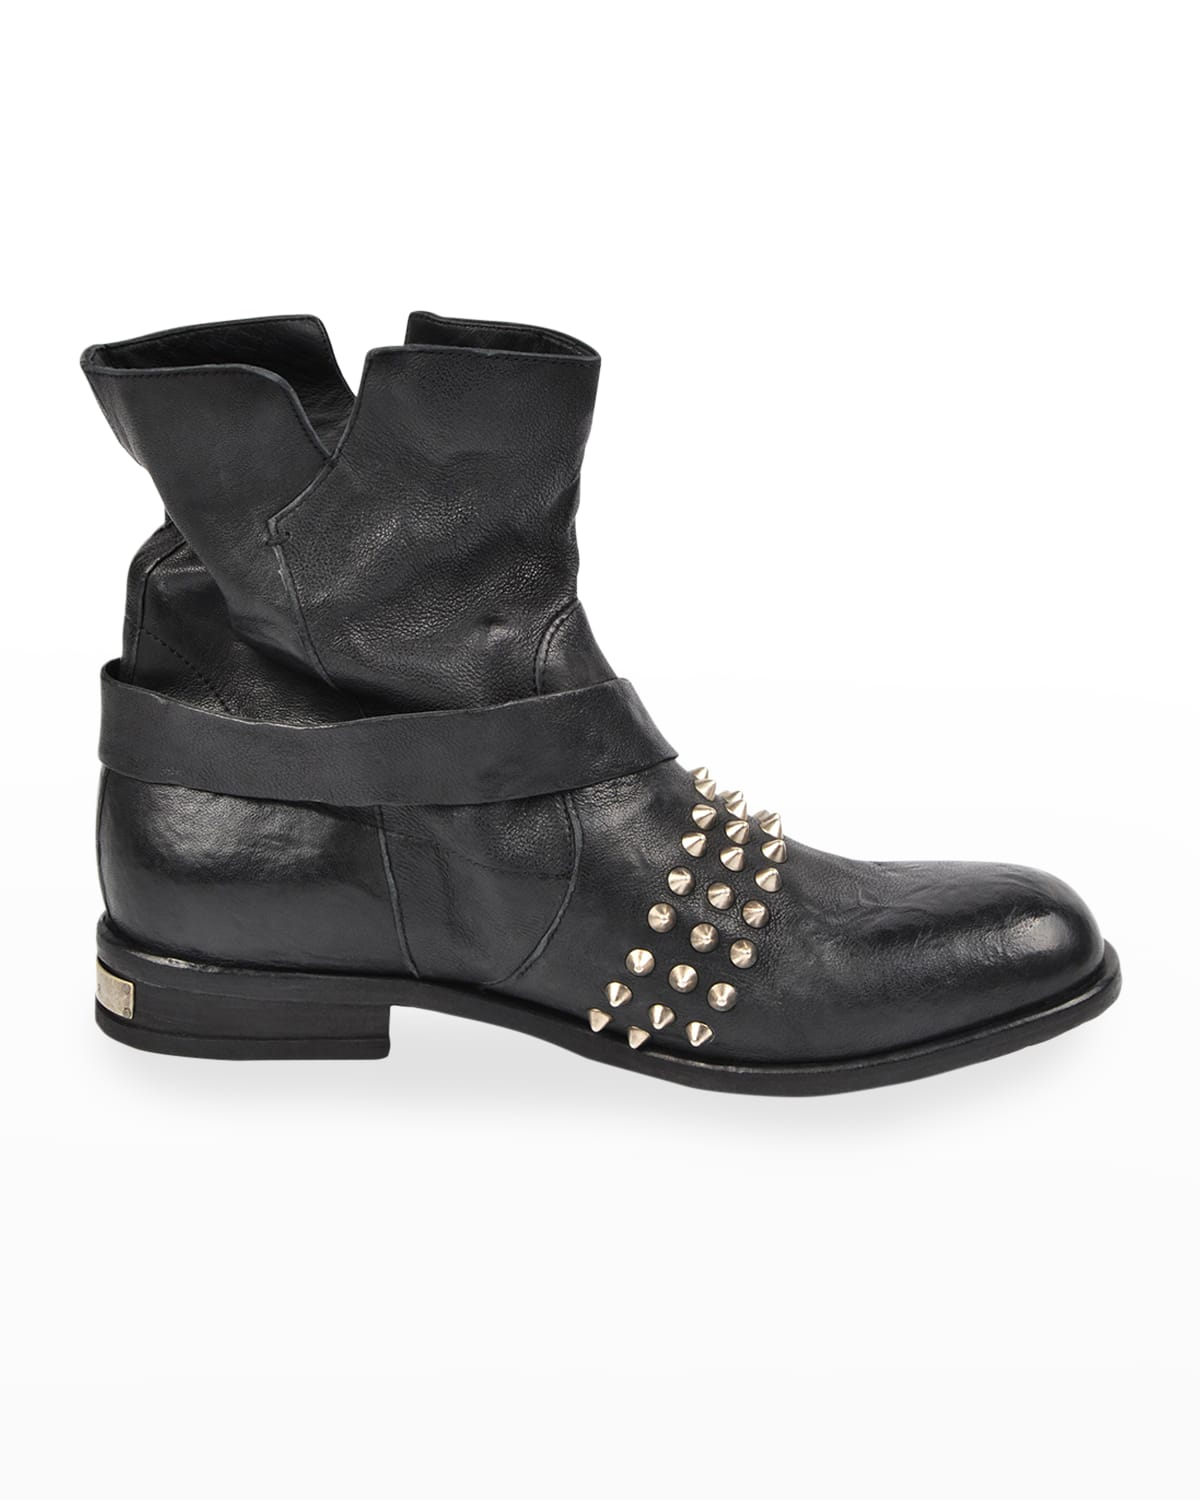 Men's Studded Leather Moto Boots